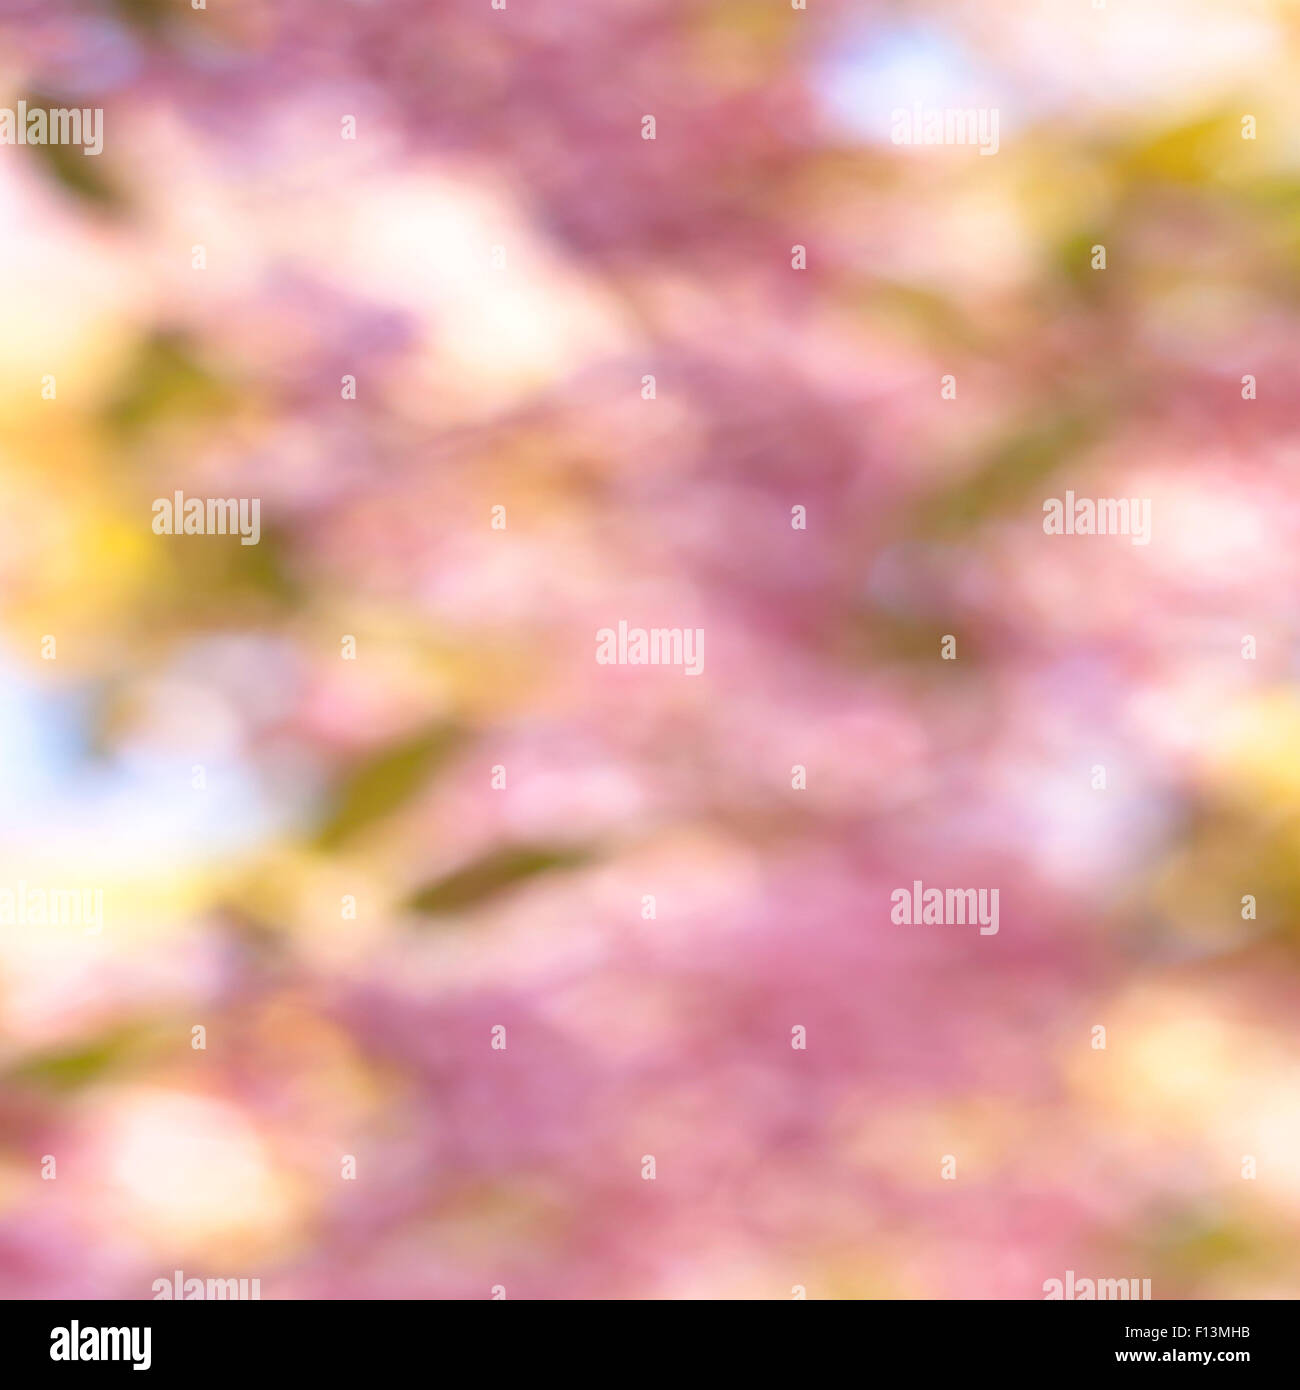 Abstract Blurred background texture of natural light. - Stock Image